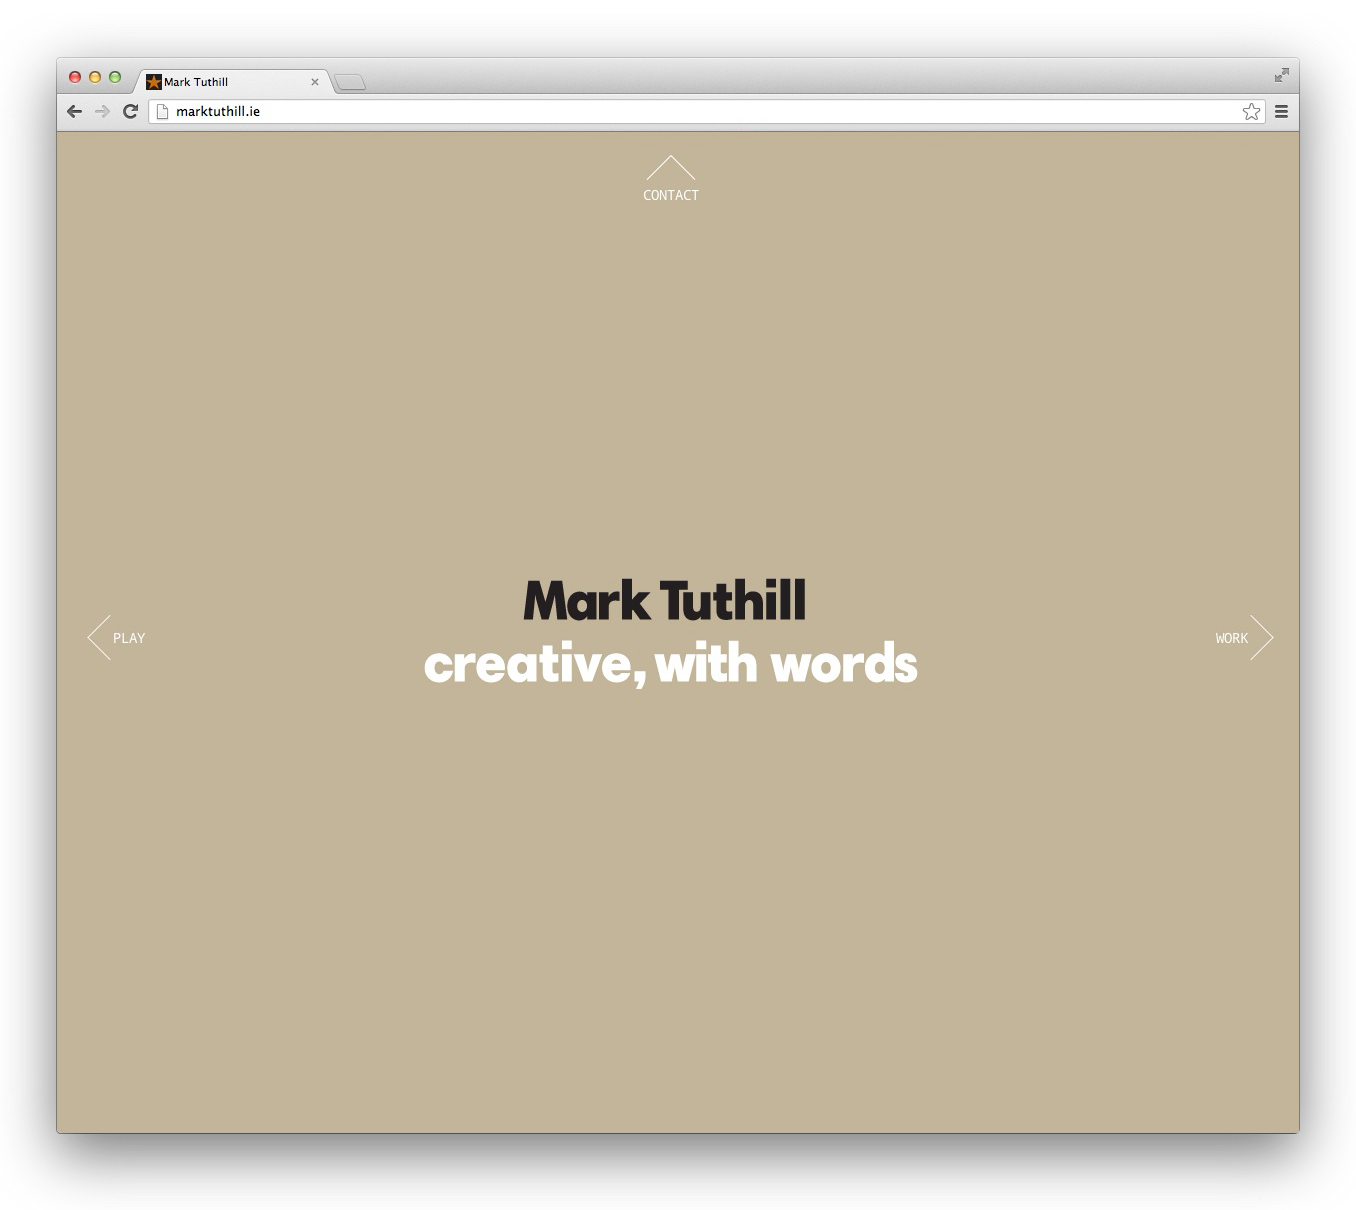 Cover image: Mark Tuthill Website